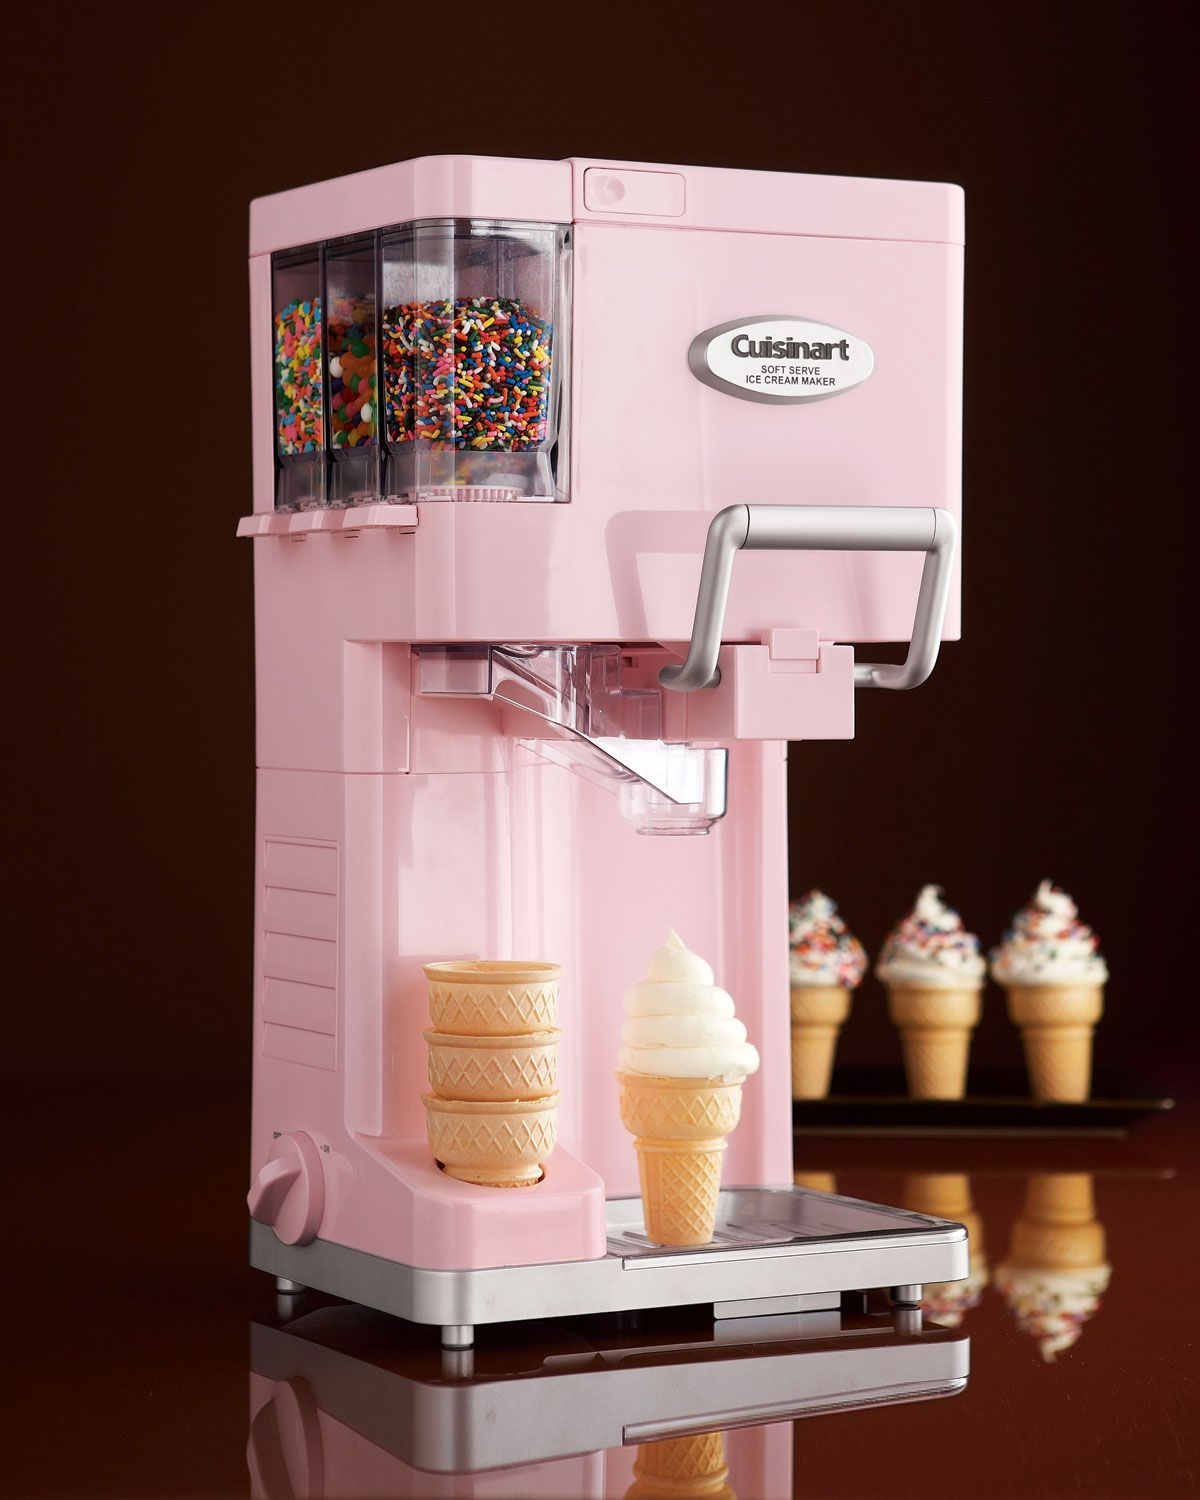 soft serve ice cream maker by cuisinart if you didn 39 t get the hint before here it is again don. Black Bedroom Furniture Sets. Home Design Ideas